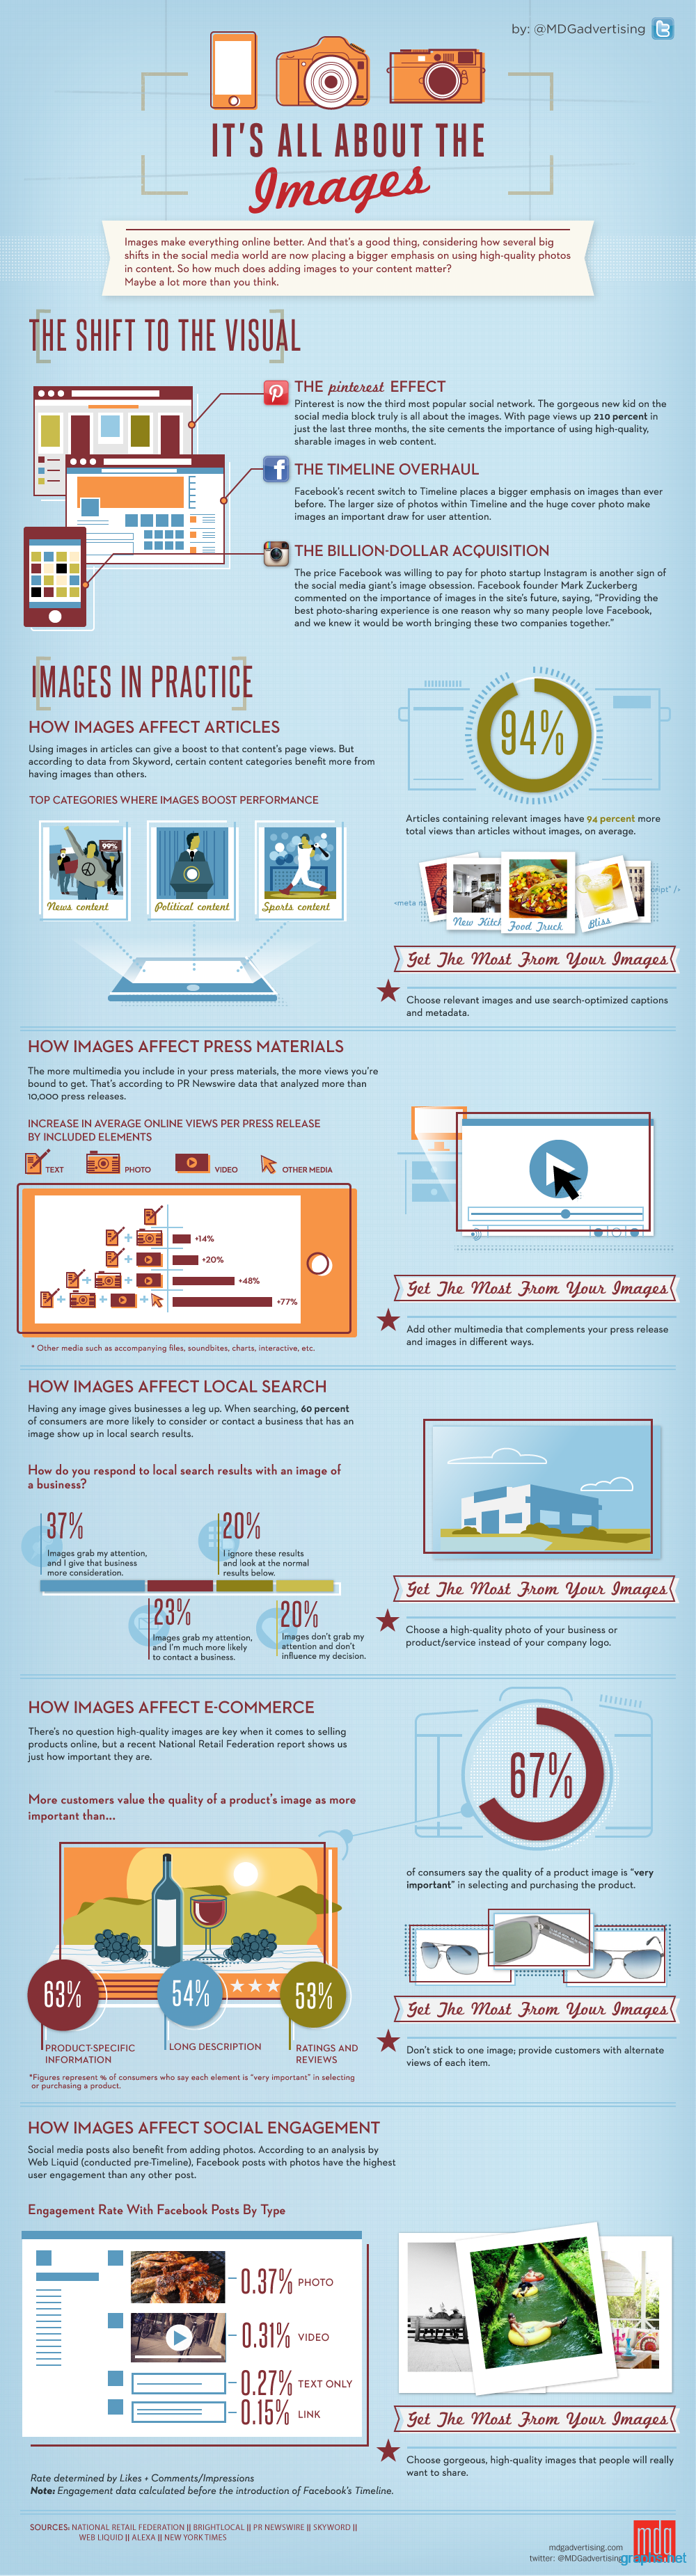 facts about the internet images